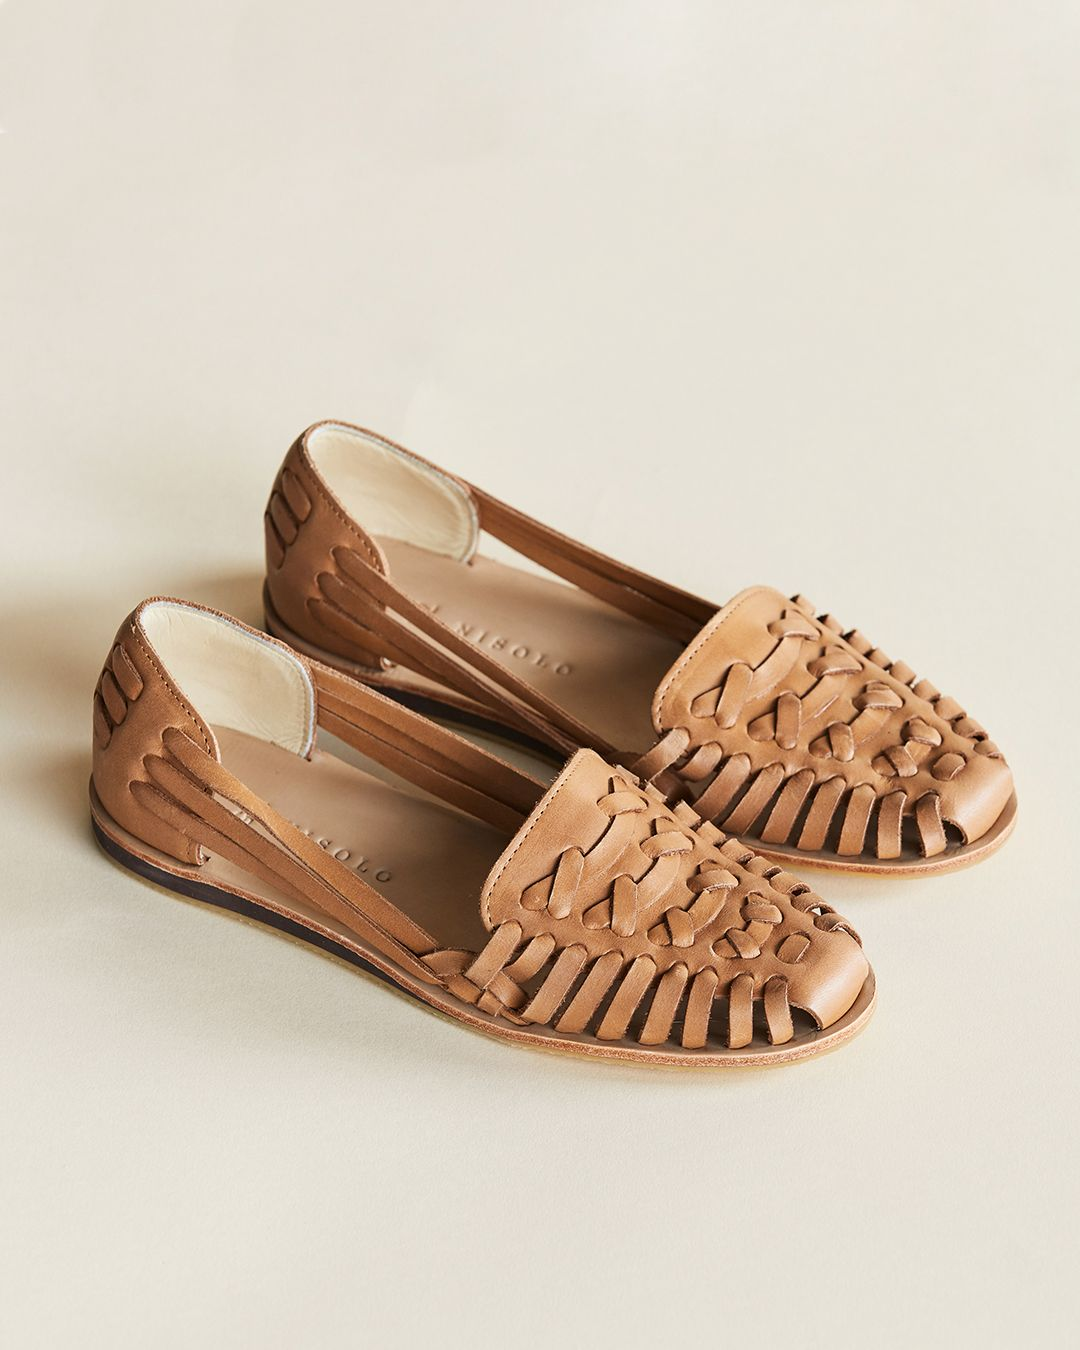 d1f27db44020 It dates back to pre-Columbian Mexico and has since became a warm weather  staple shoe across many countries and cultures. Our Ecuador Huarache Sandal  ...